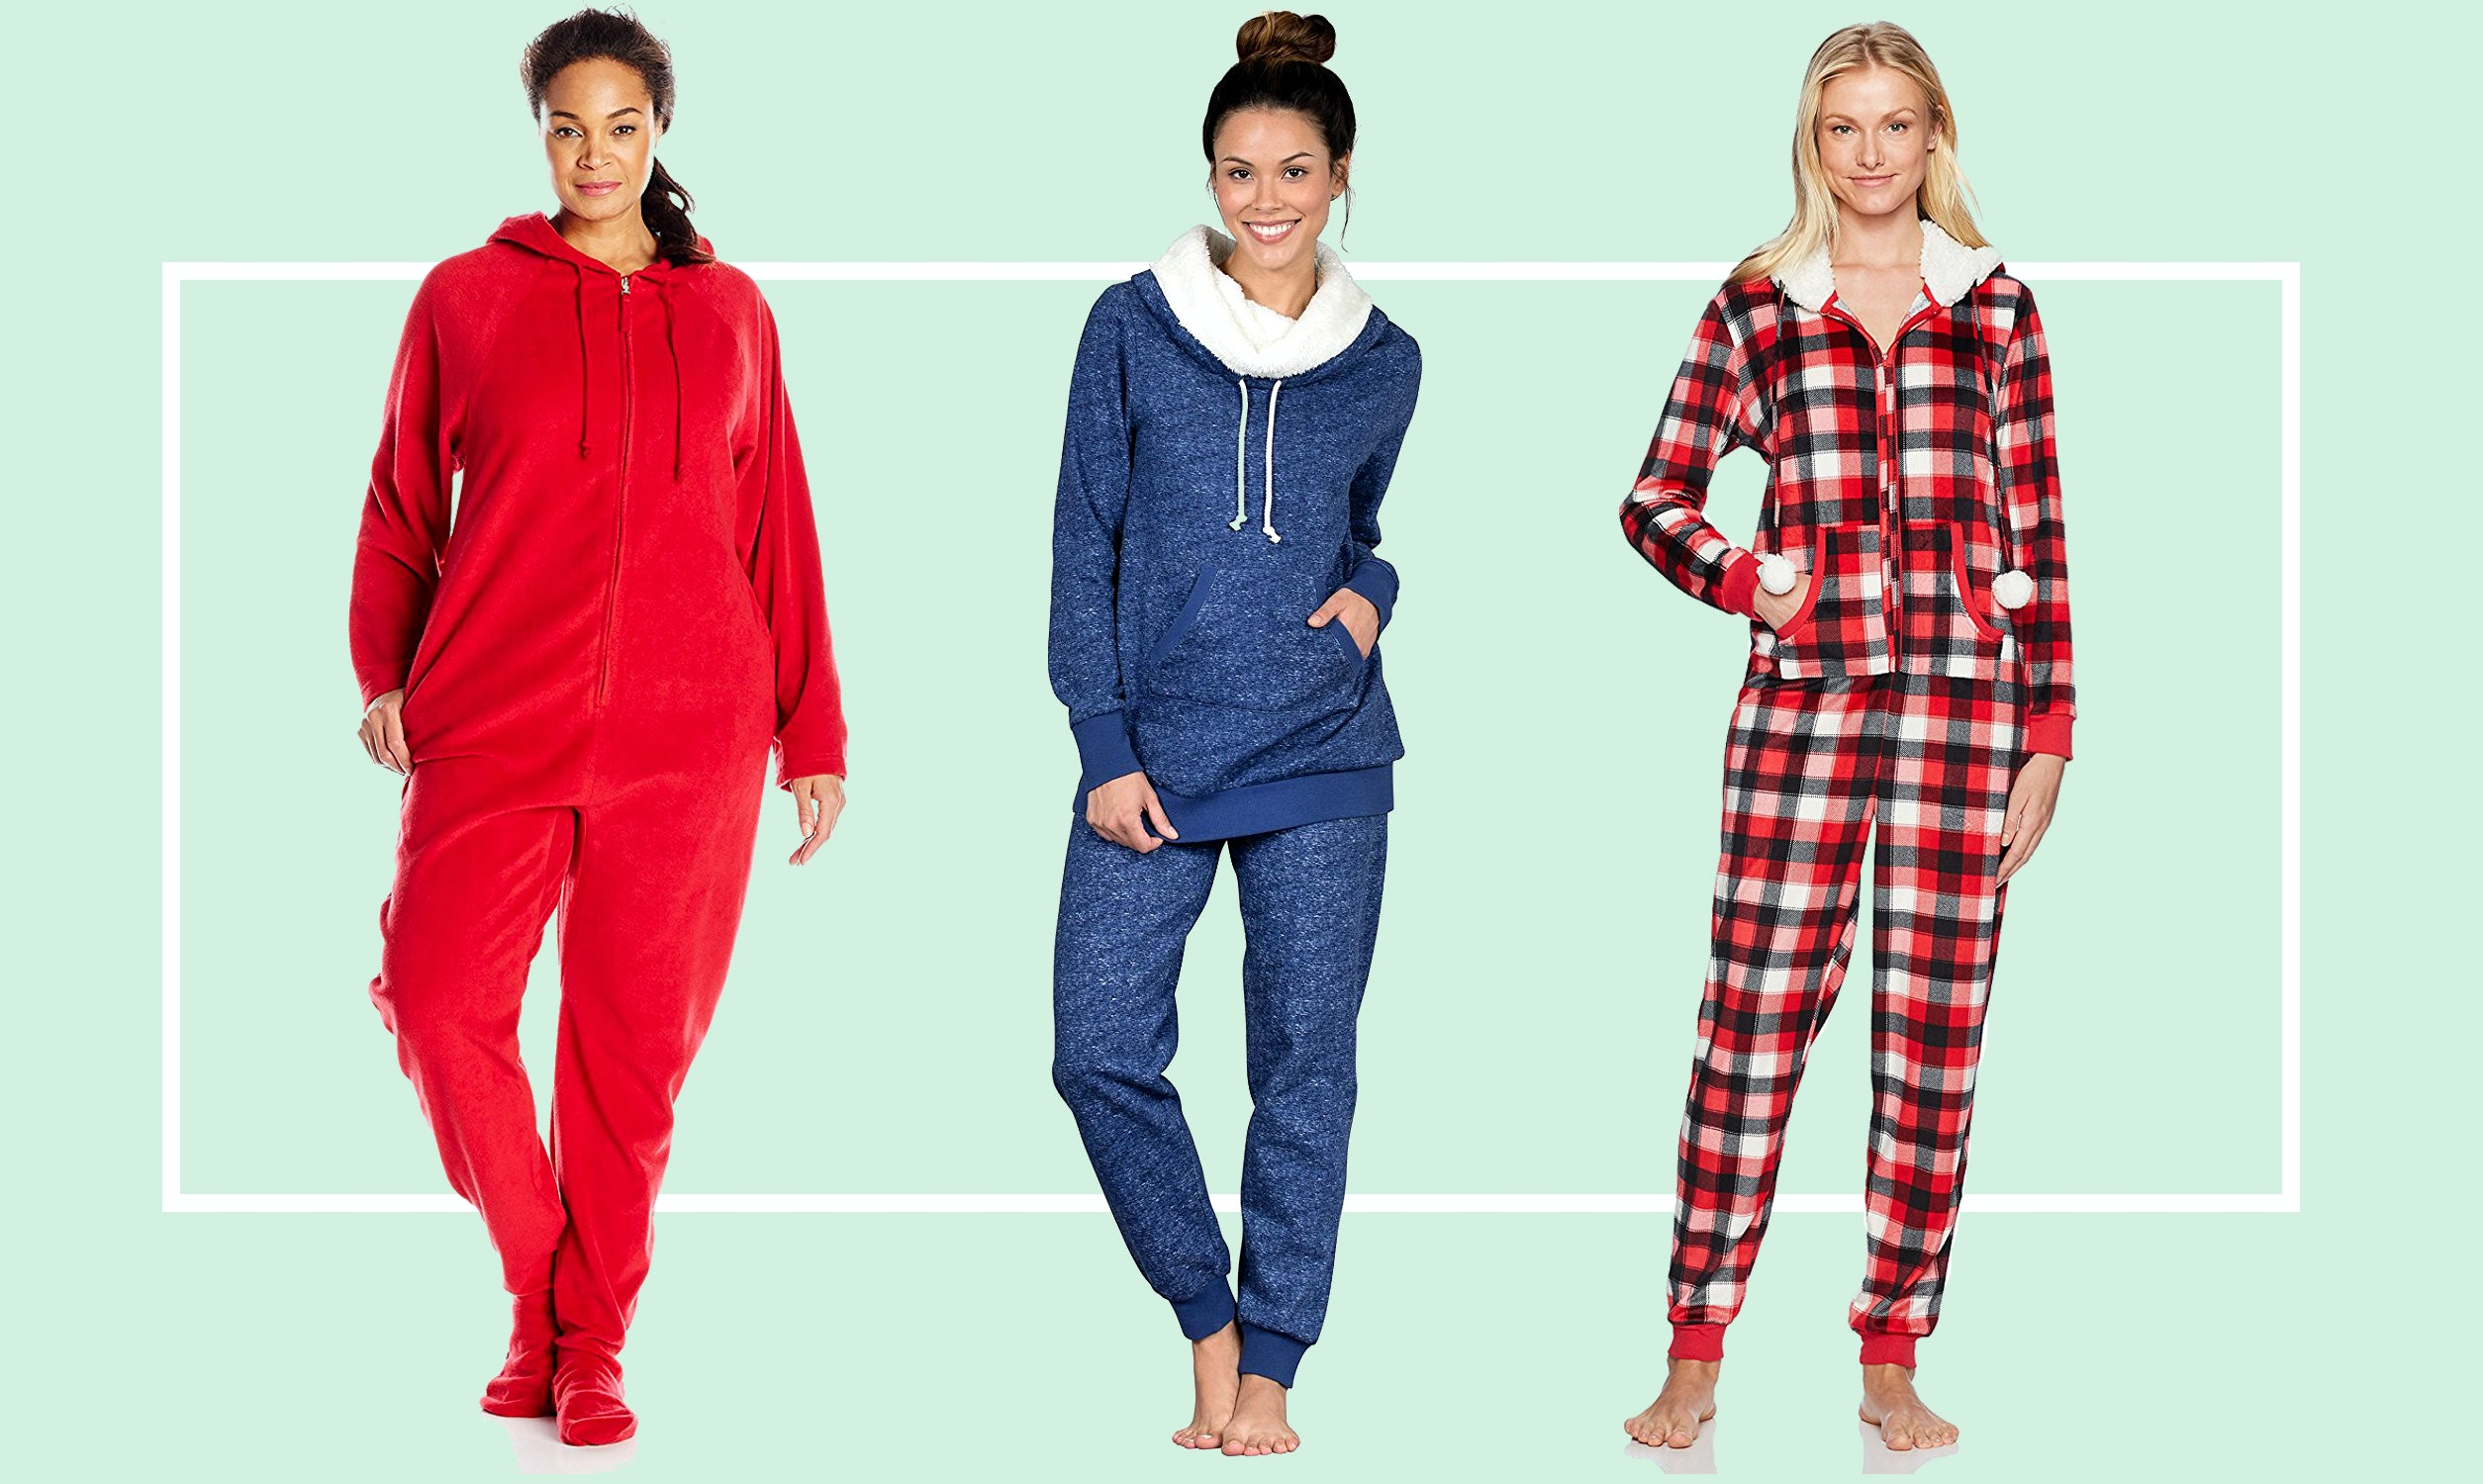 Chic and cozy winter pajamas exclusive photo